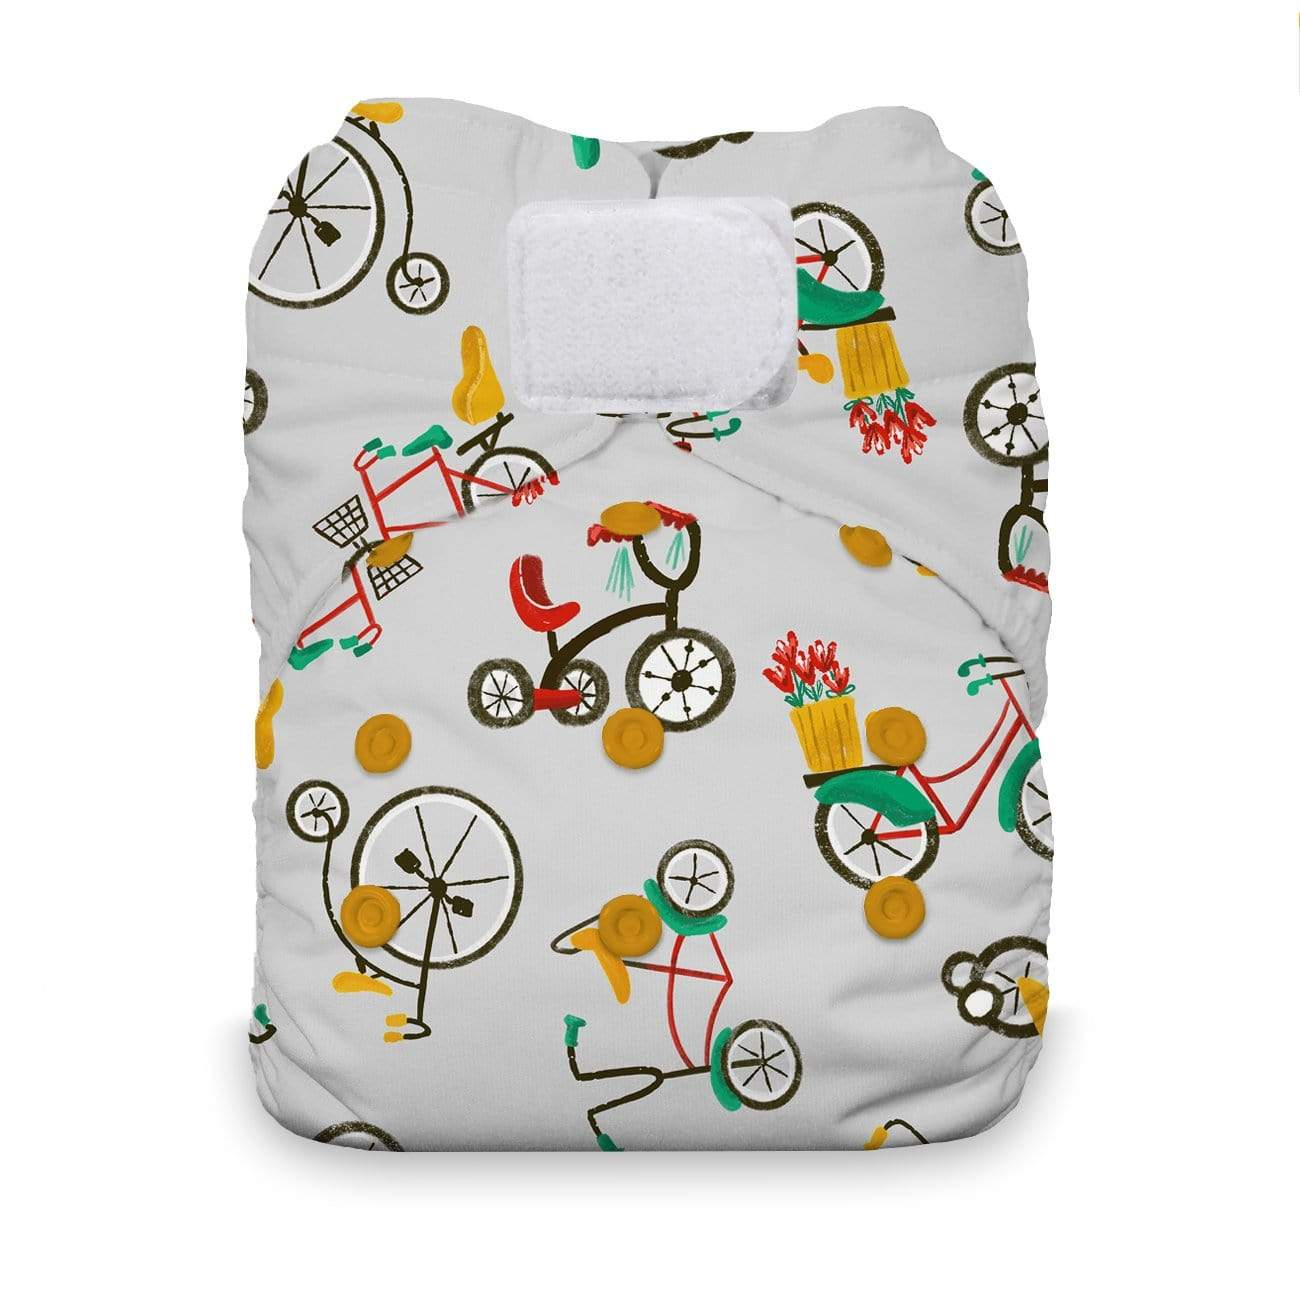 Thirsties One Size Hook and Loop All In One Diaper - Cruising